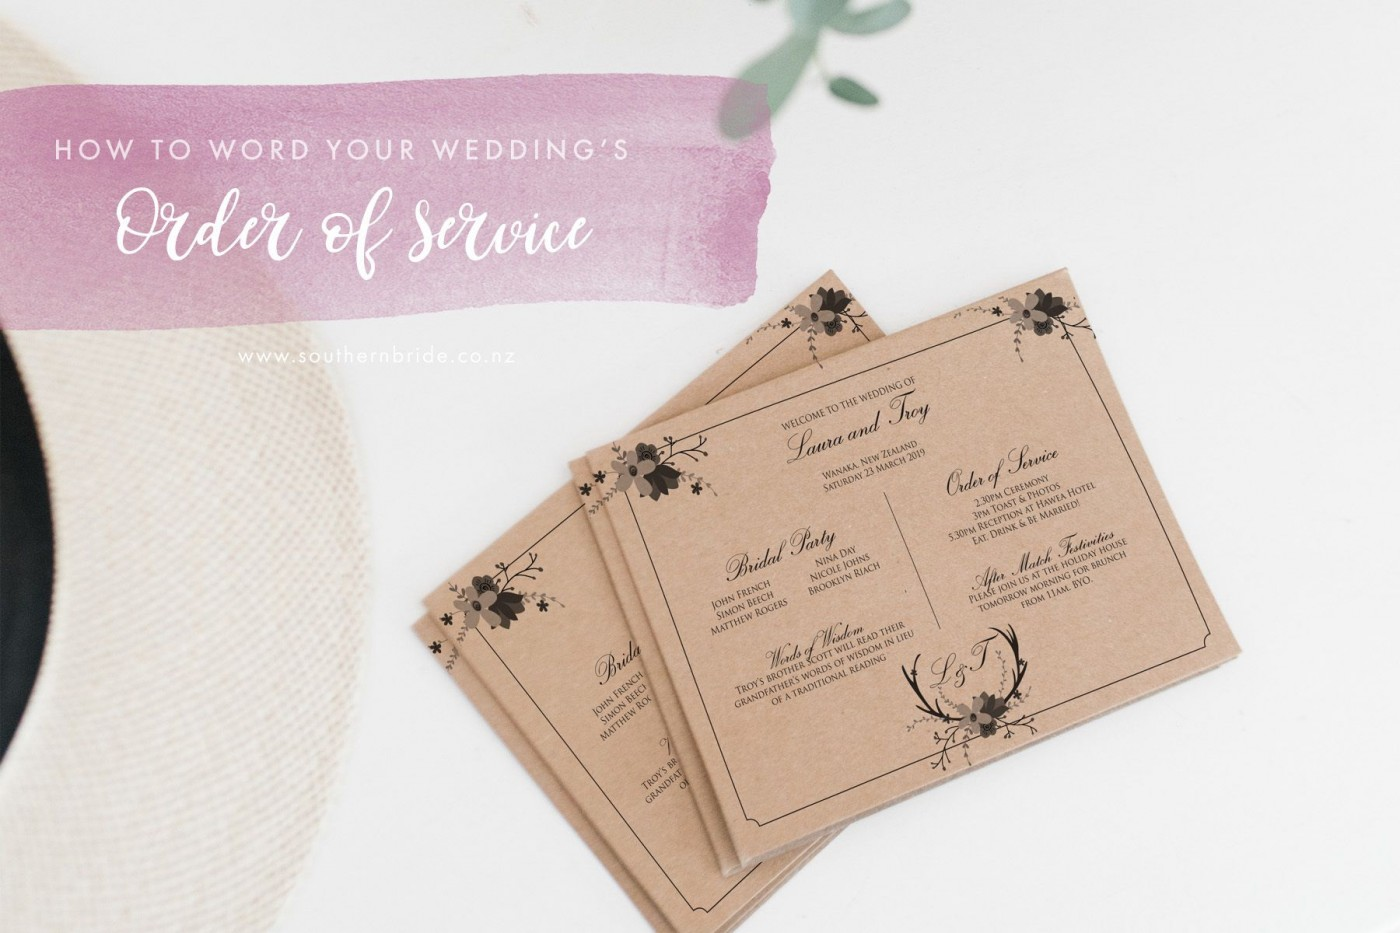 007 Unique Free Wedding Order Of Service Template Word Image  Microsoft1400